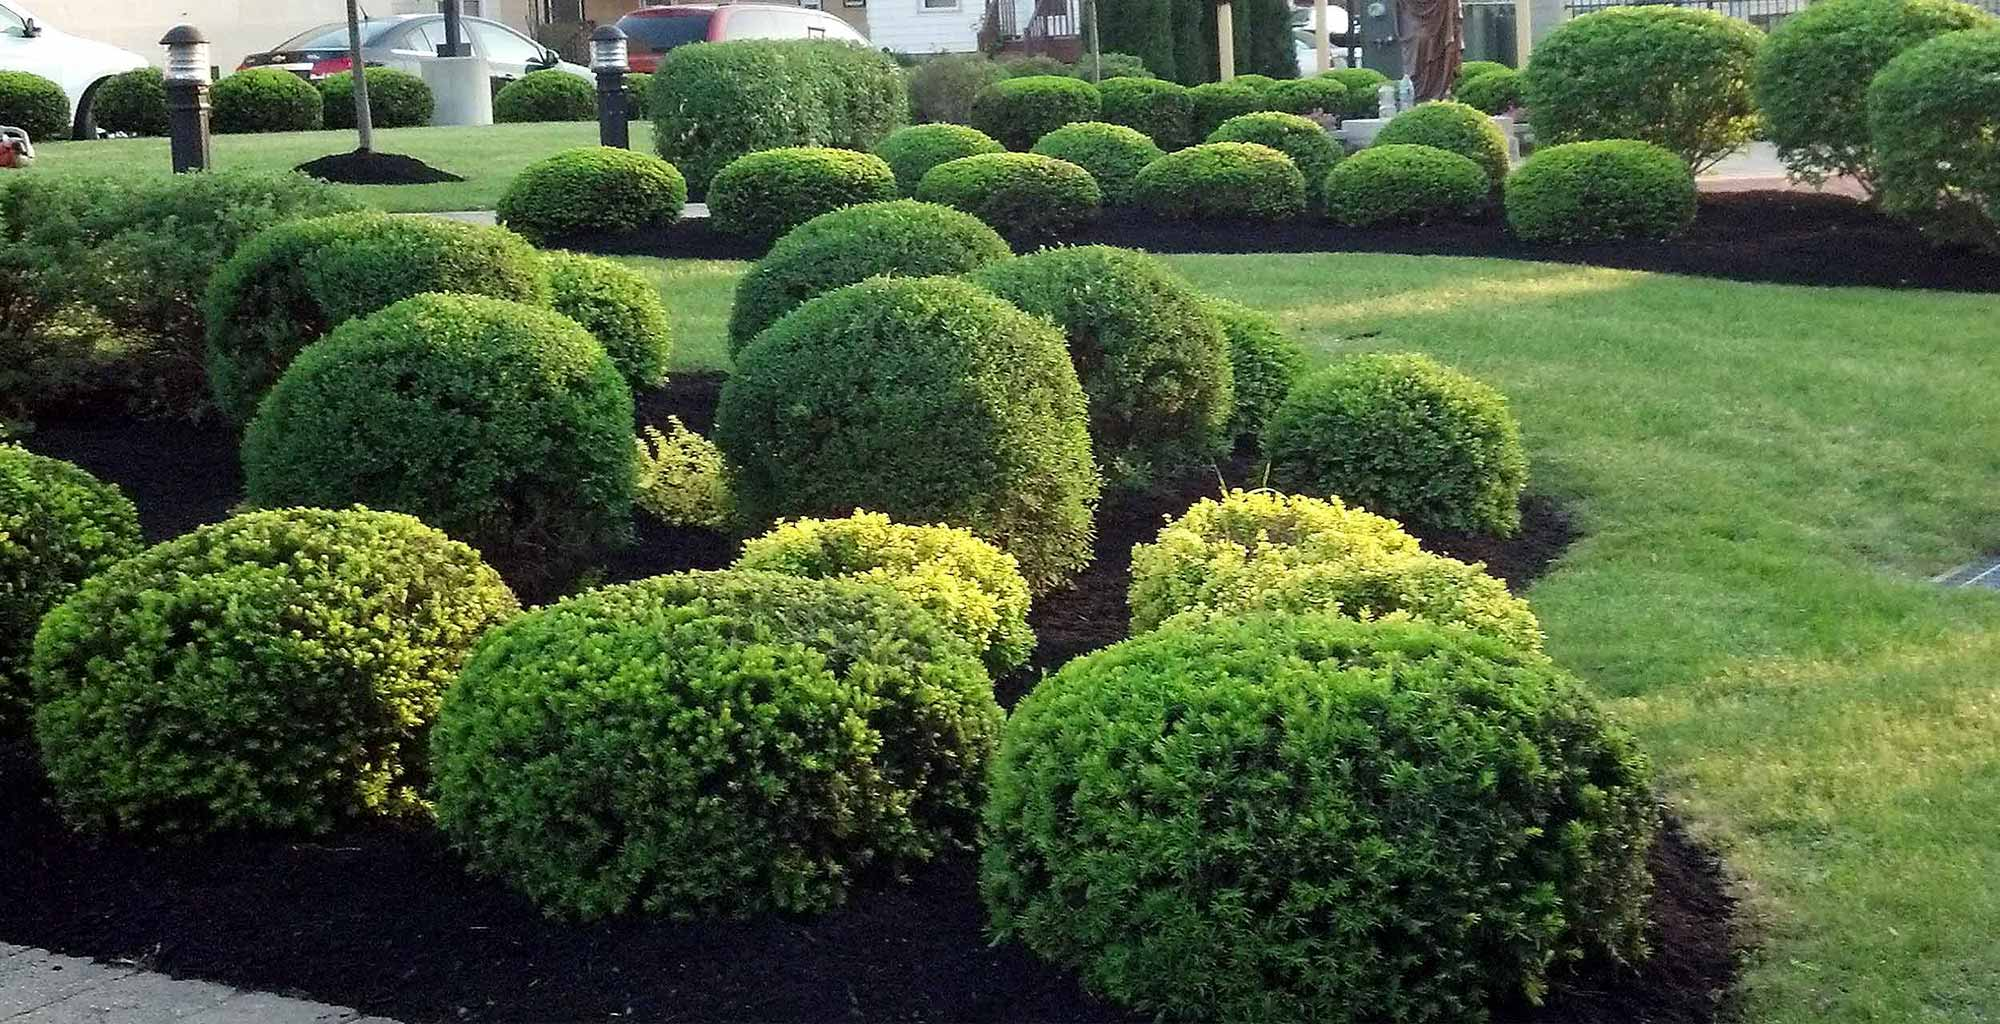 Irondequoit Landscape - A Rochester, NY family-run lawn care, landscaping, & hardscaping contractor since 1987